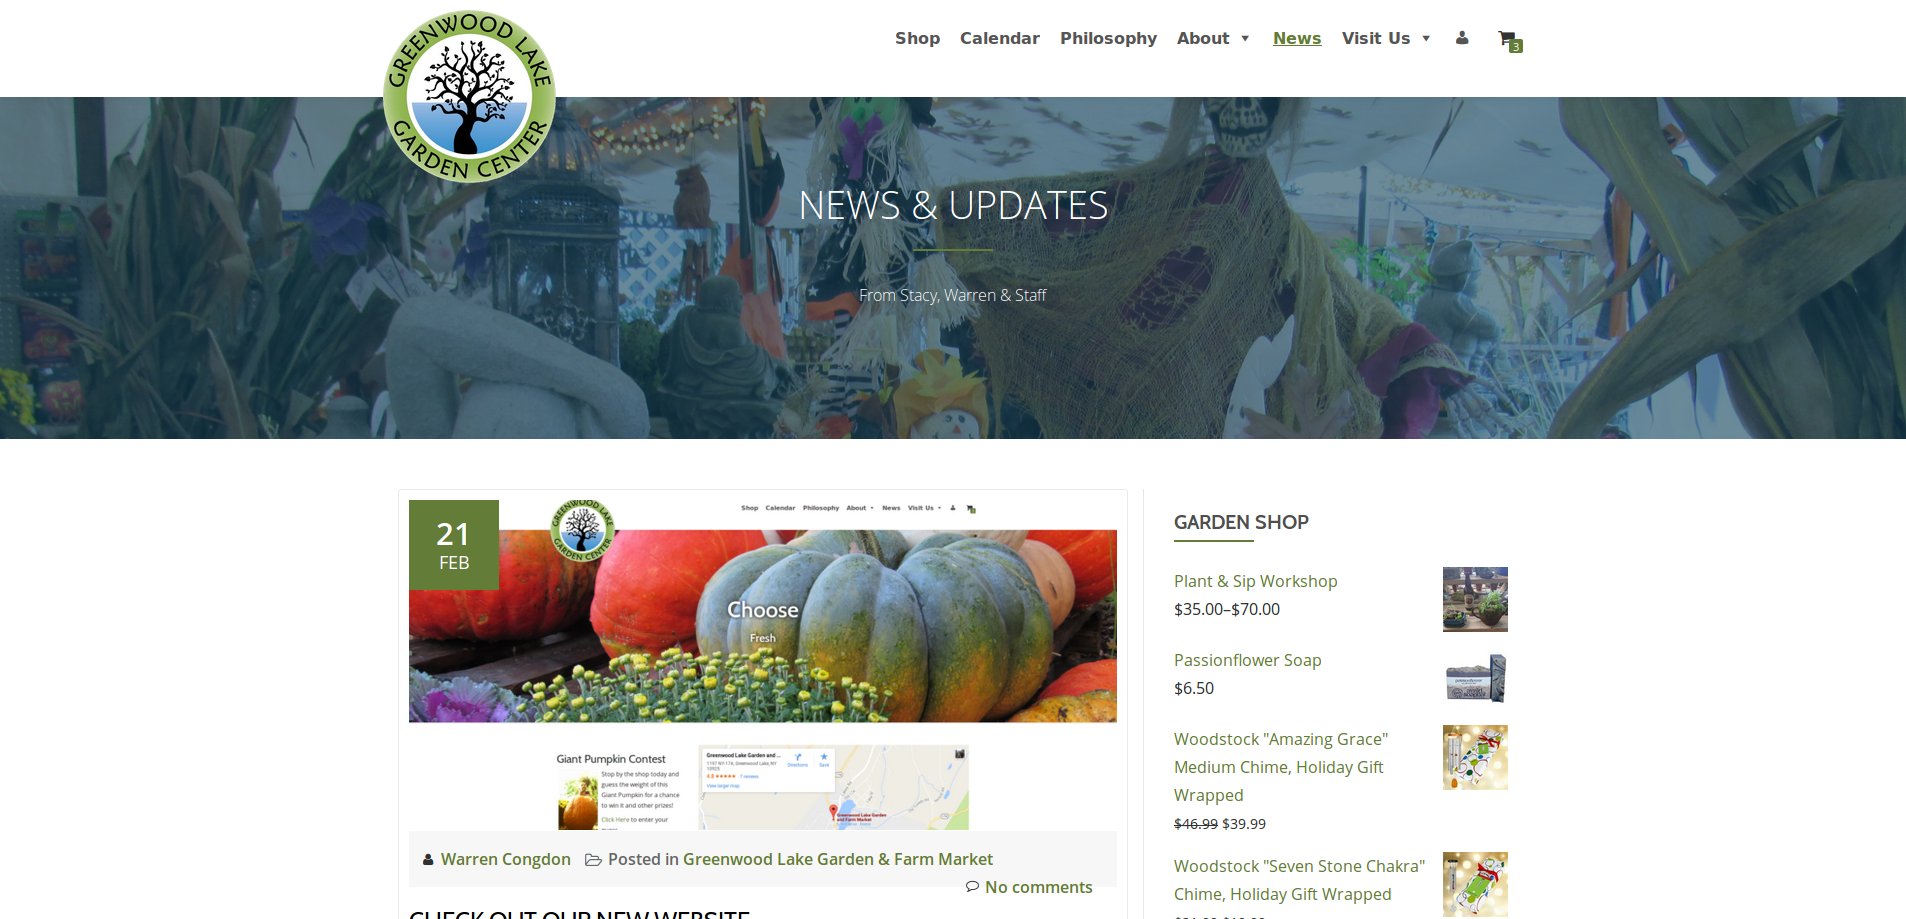 New Website News Page